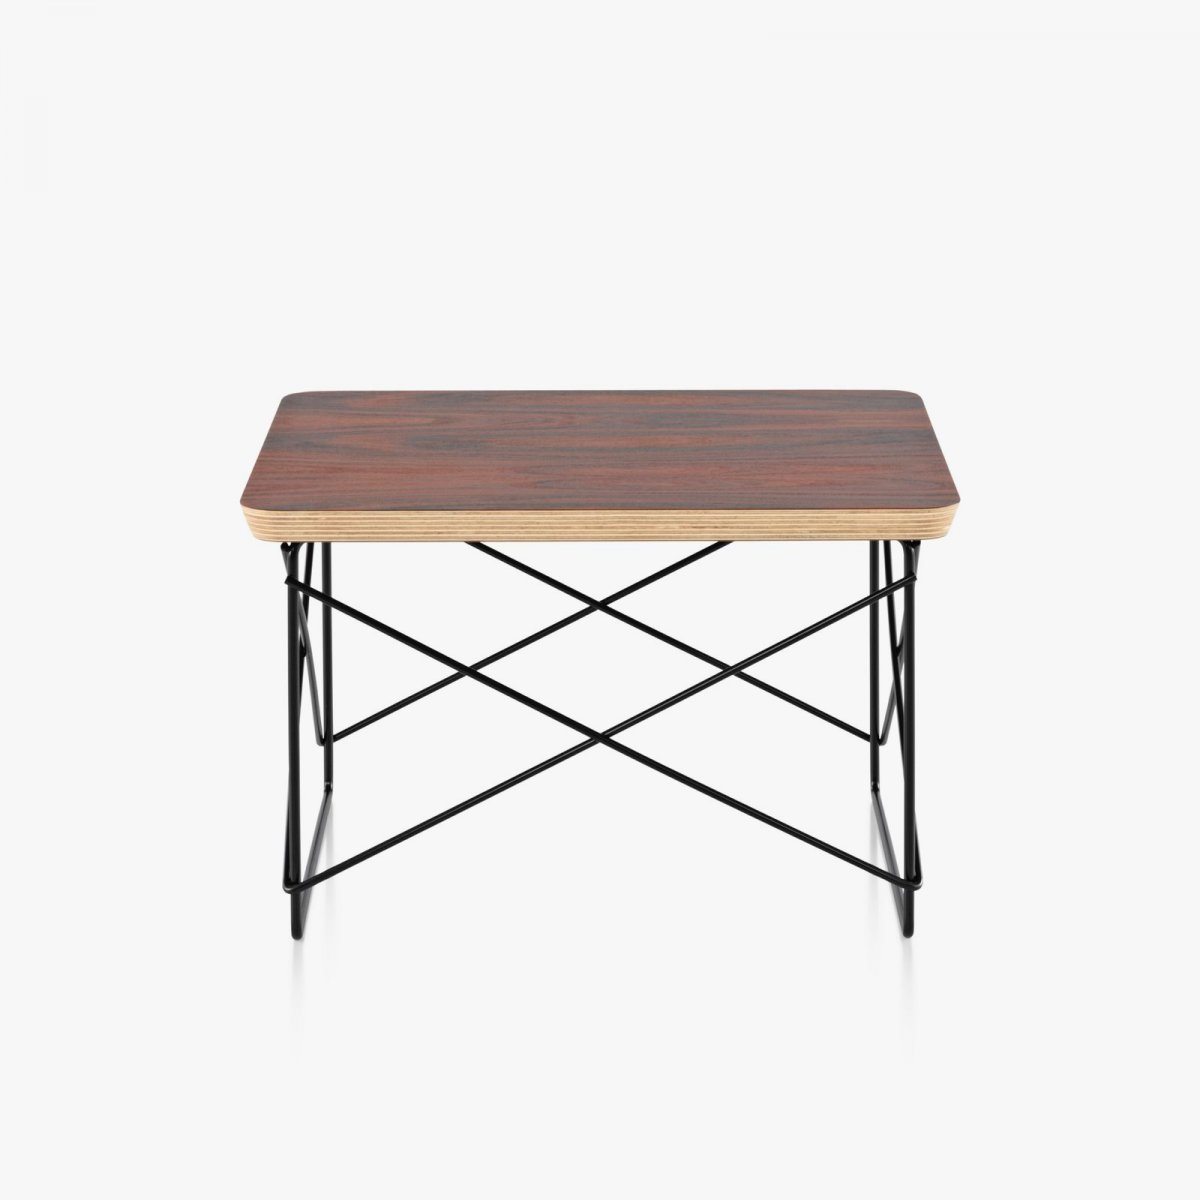 Eames Wire Base Low Table, santos palisander top with black base.